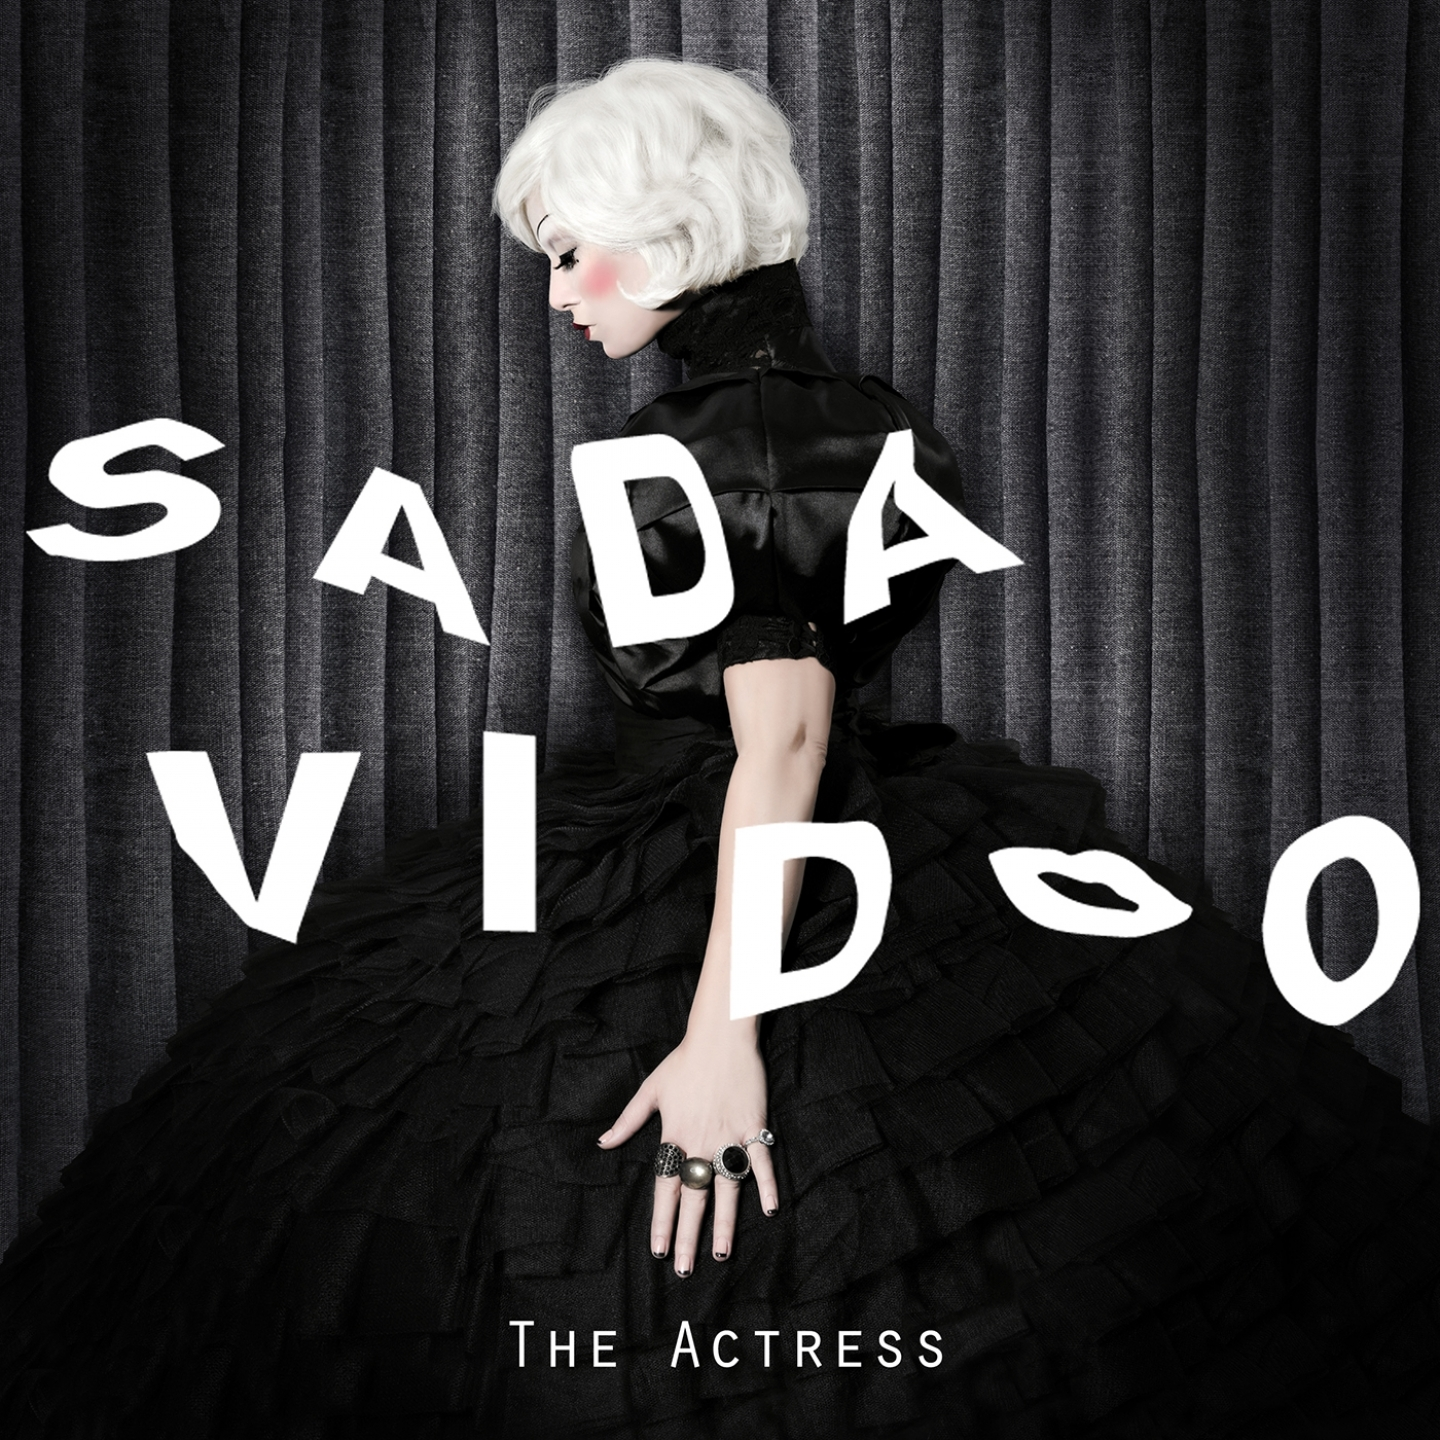 Sada Vidoo – 'The Actress' (Single)